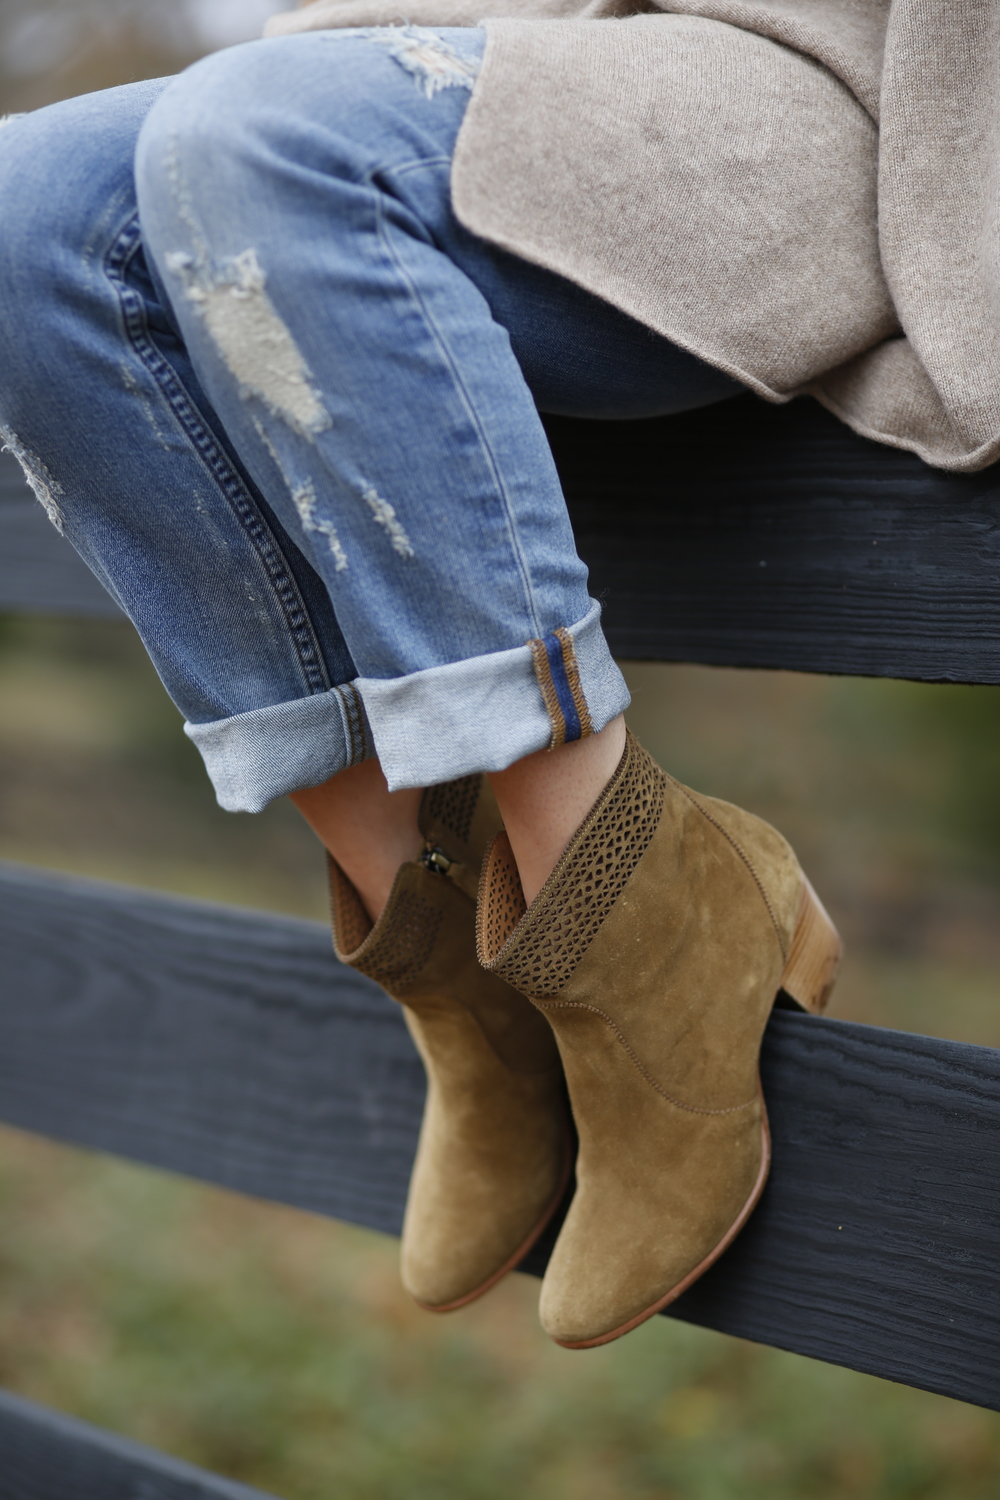 Favorite booties of all time!! Comfy and Chic! You can't beat that!